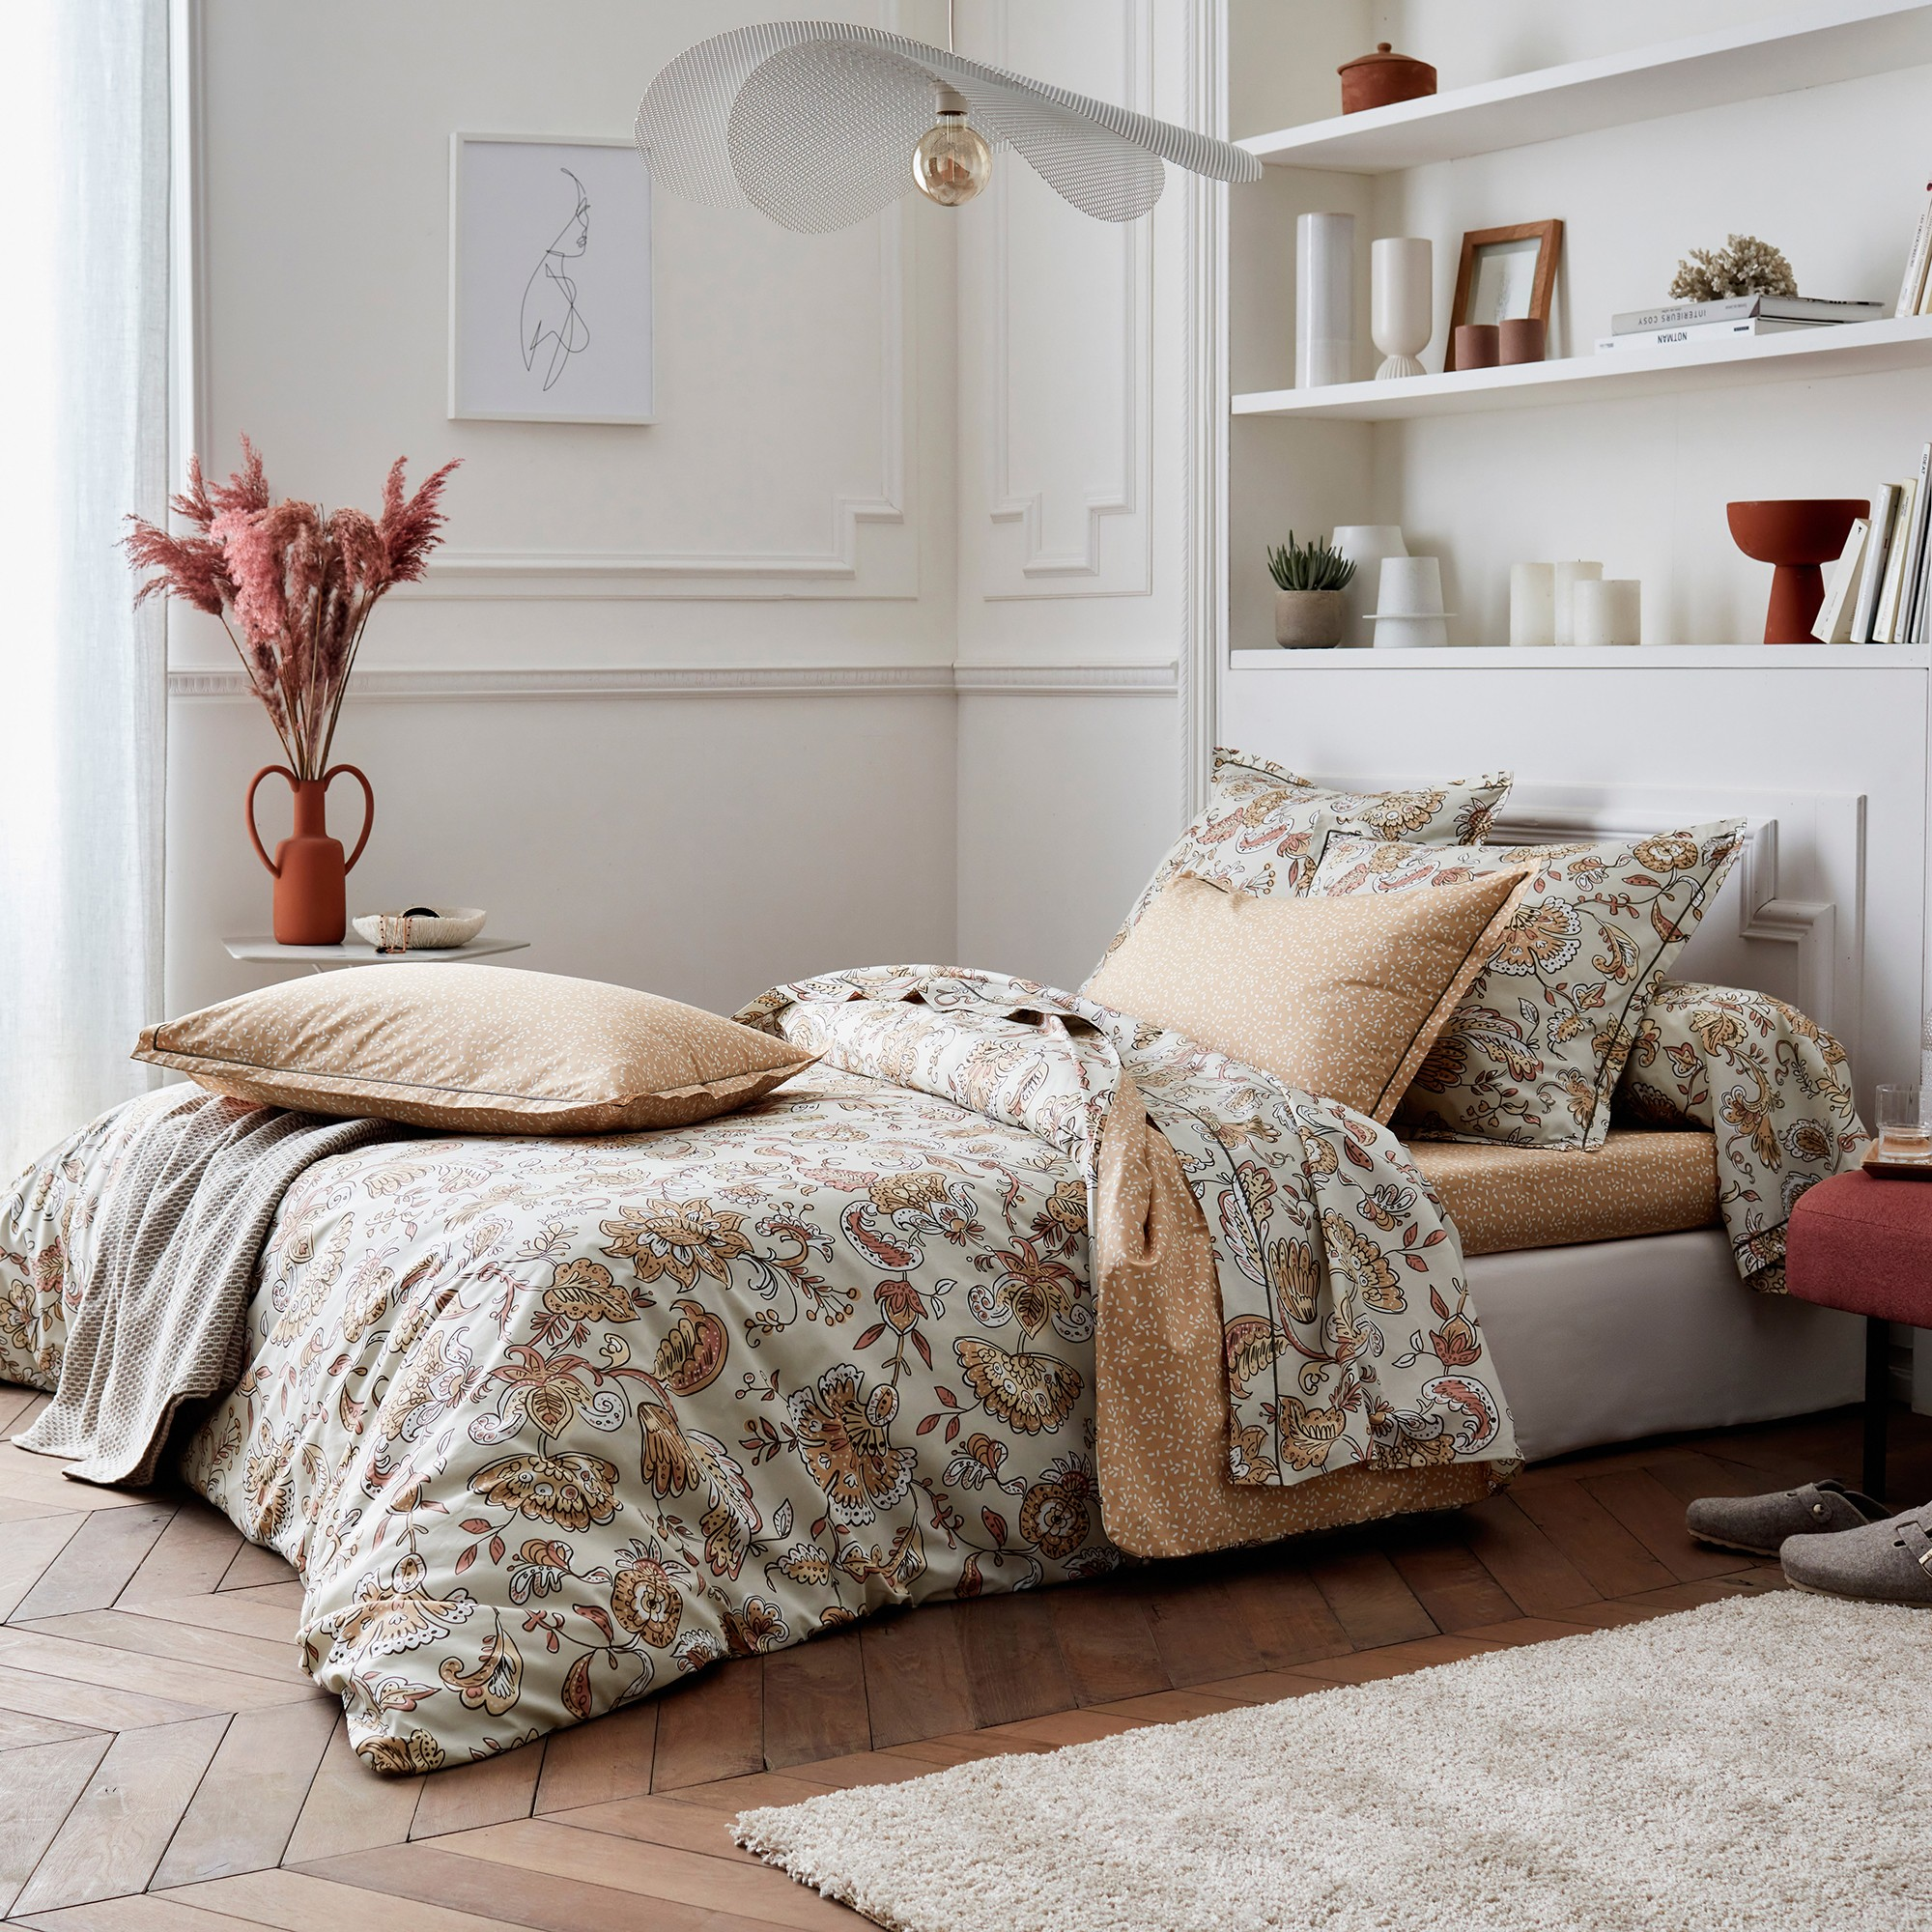 linge de lit big ben polyester coton blancheporte. Black Bedroom Furniture Sets. Home Design Ideas